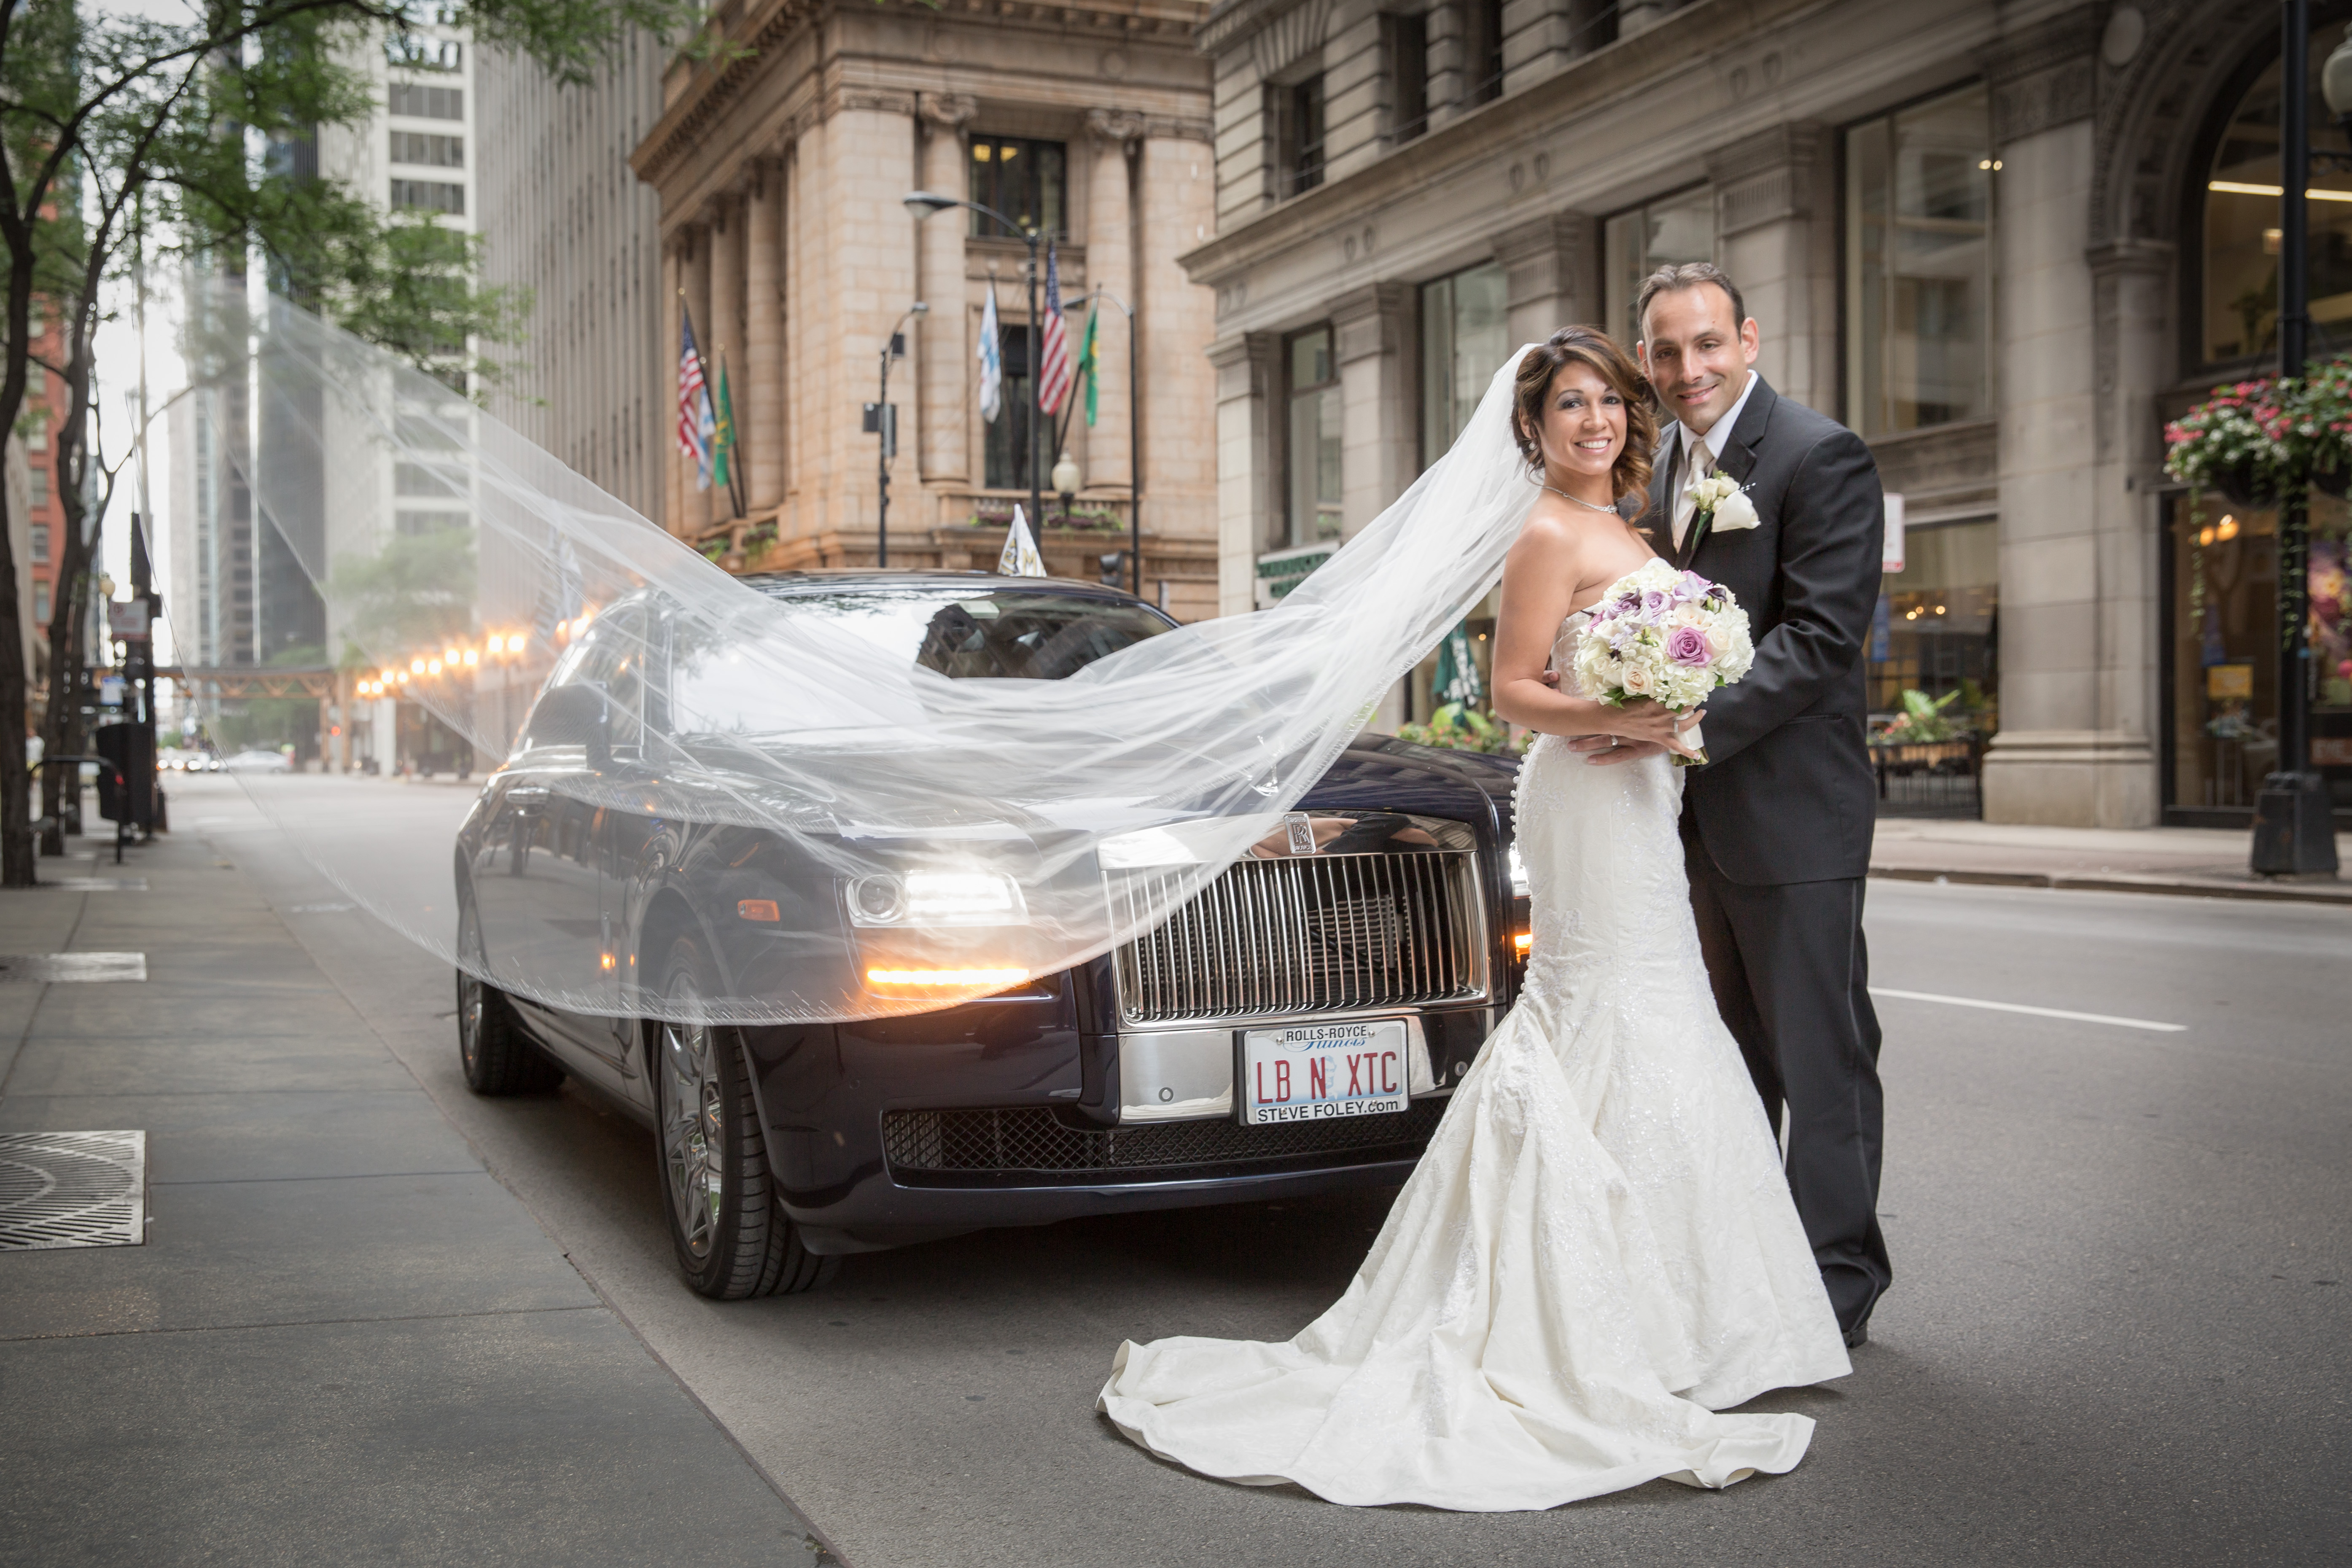 Veil Blows in the Breeze in Front of Rolls Royce